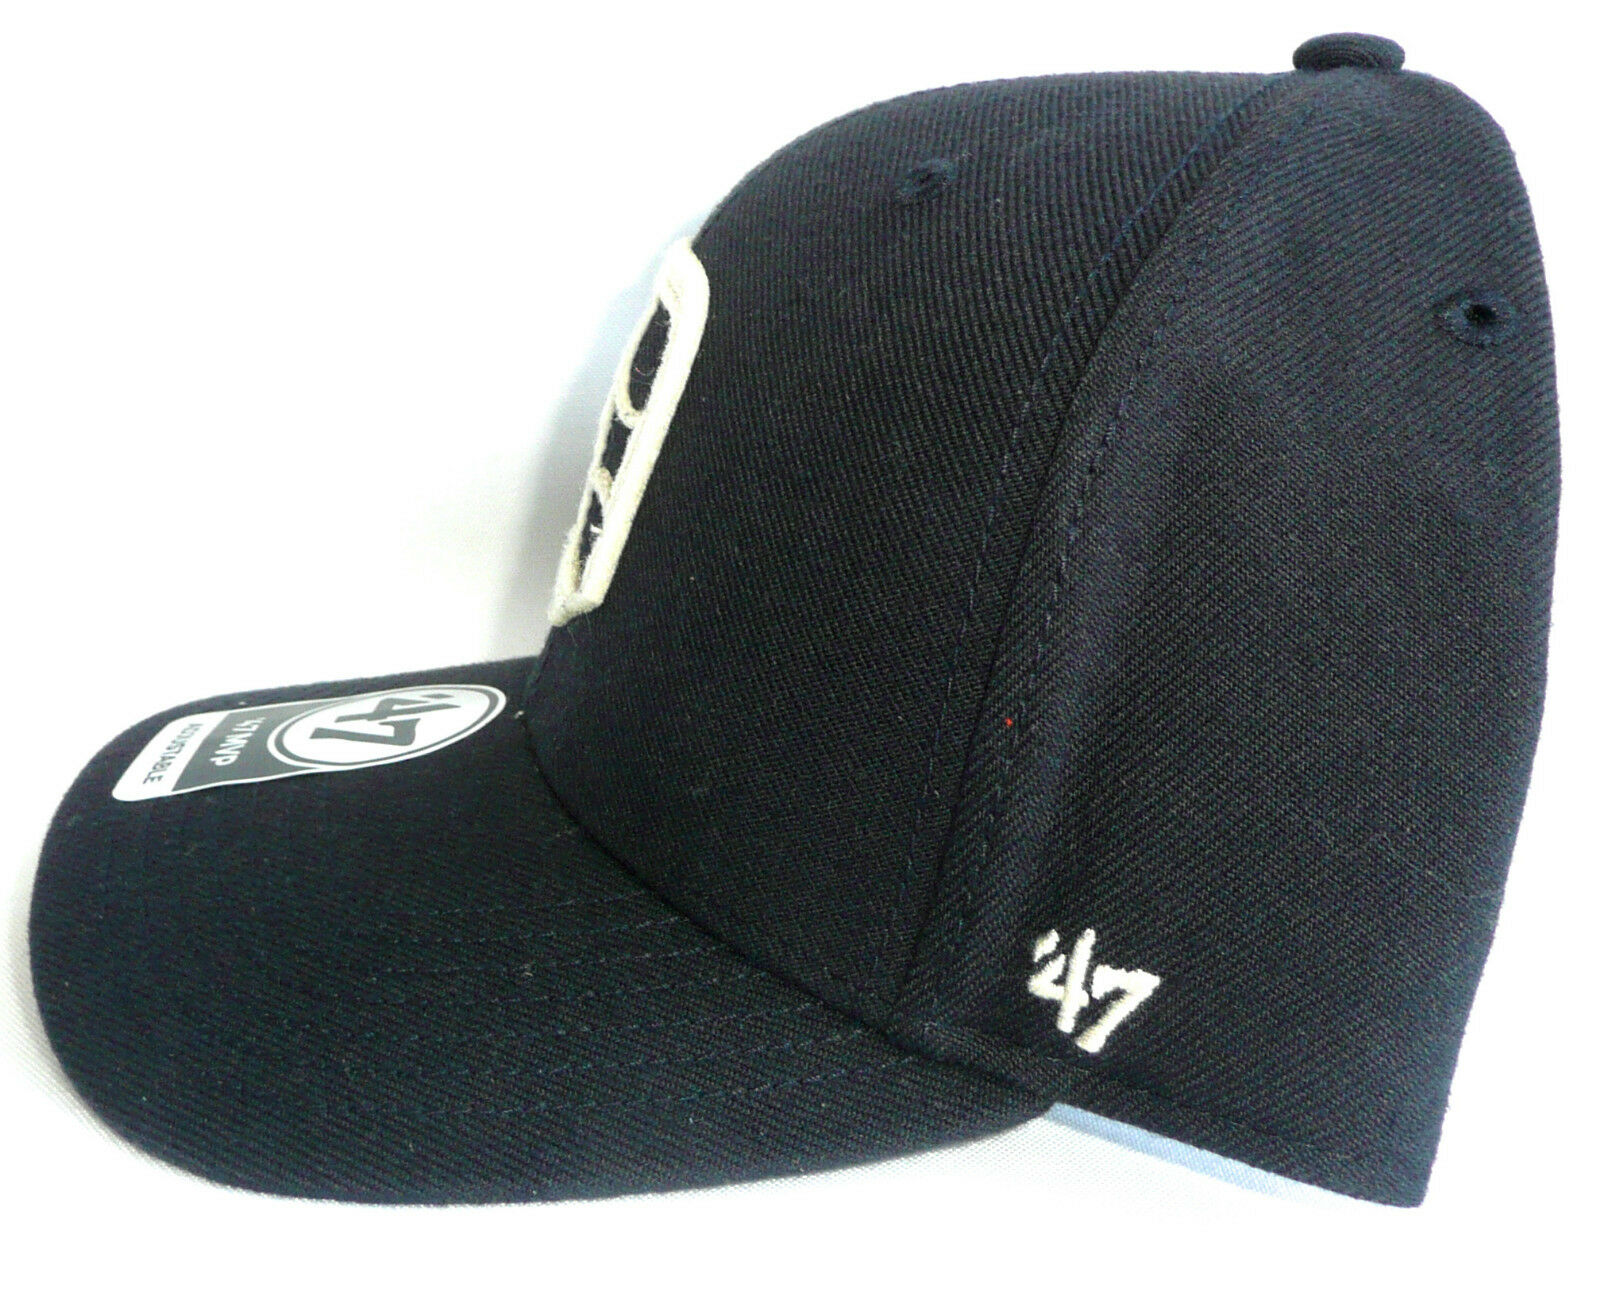 a15627dfaa9e7 ... official store detroit tigers 47 forty seven brand adjustable brim mvp  hat navy pre curved brim